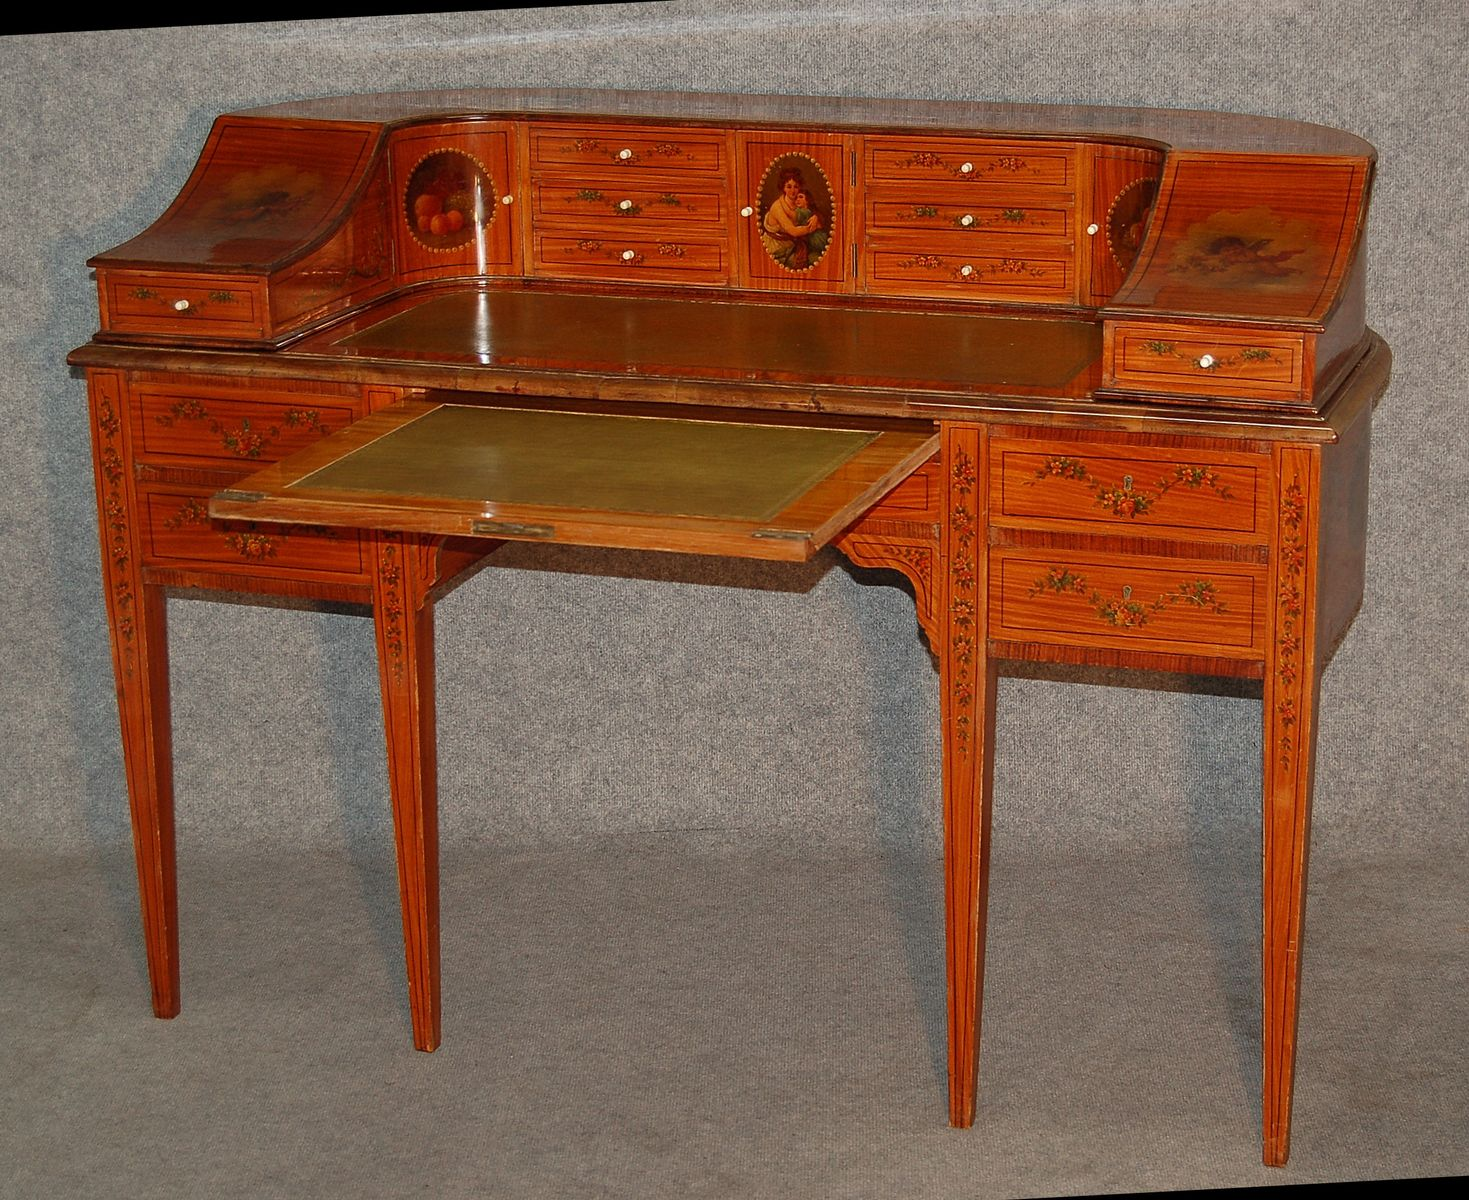 Antique English Carlton House Desk from Maple et Compagny - Antique English Carlton House Desk From Maple Et Compagny For Sale